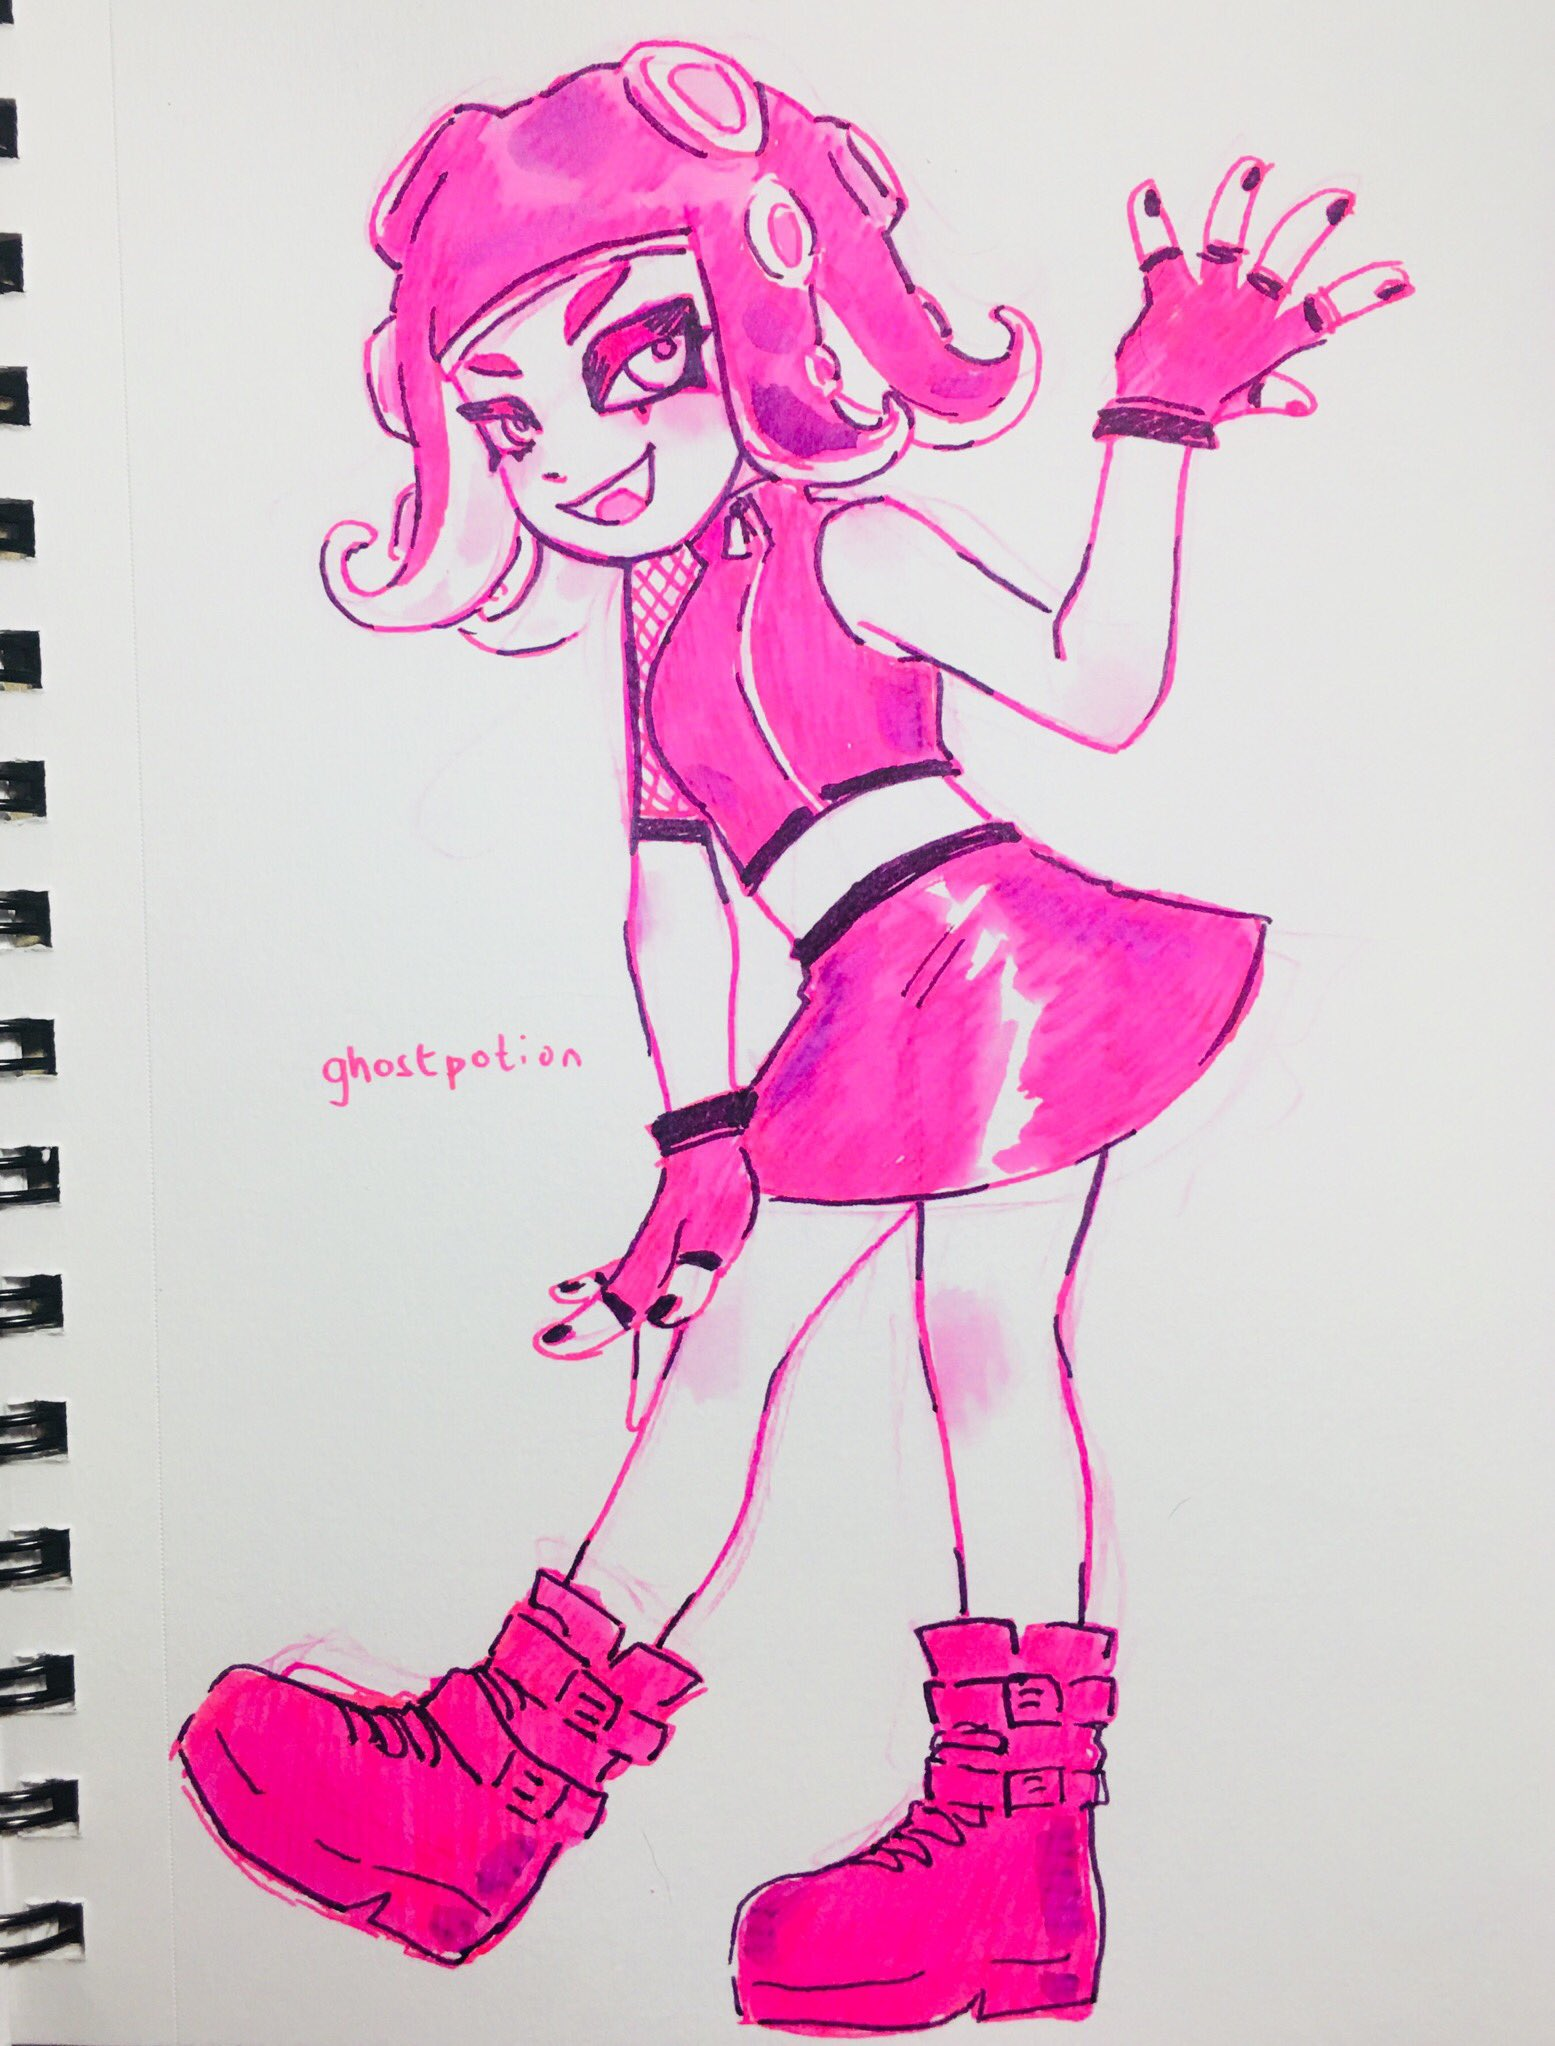 Hm. Hm. Octolings https://t.co/1uBJPvv4Wu